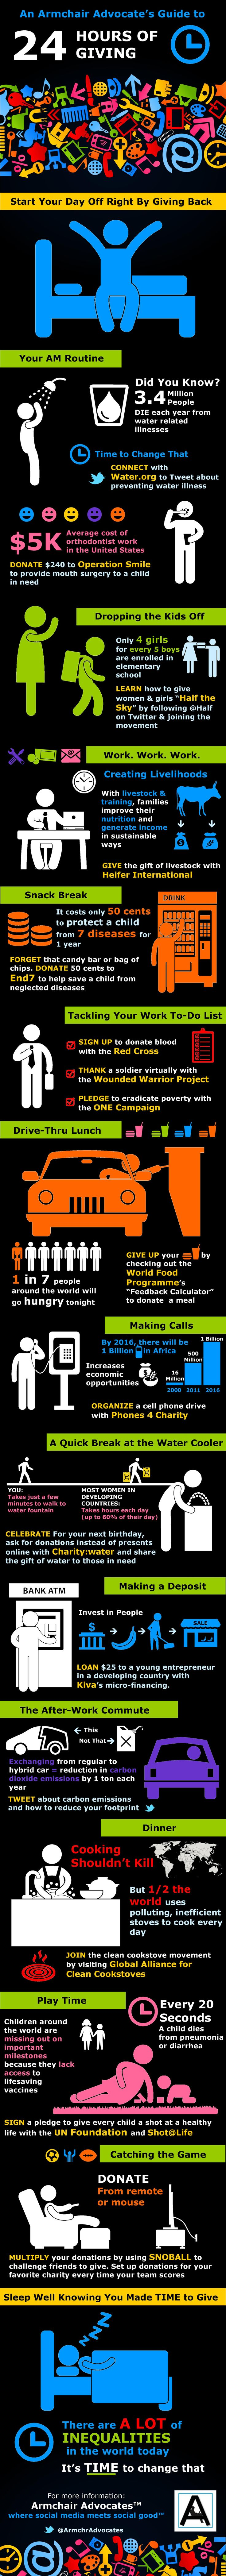 fundraising infographic you call it 39 lazy 39 i call it 39 charity